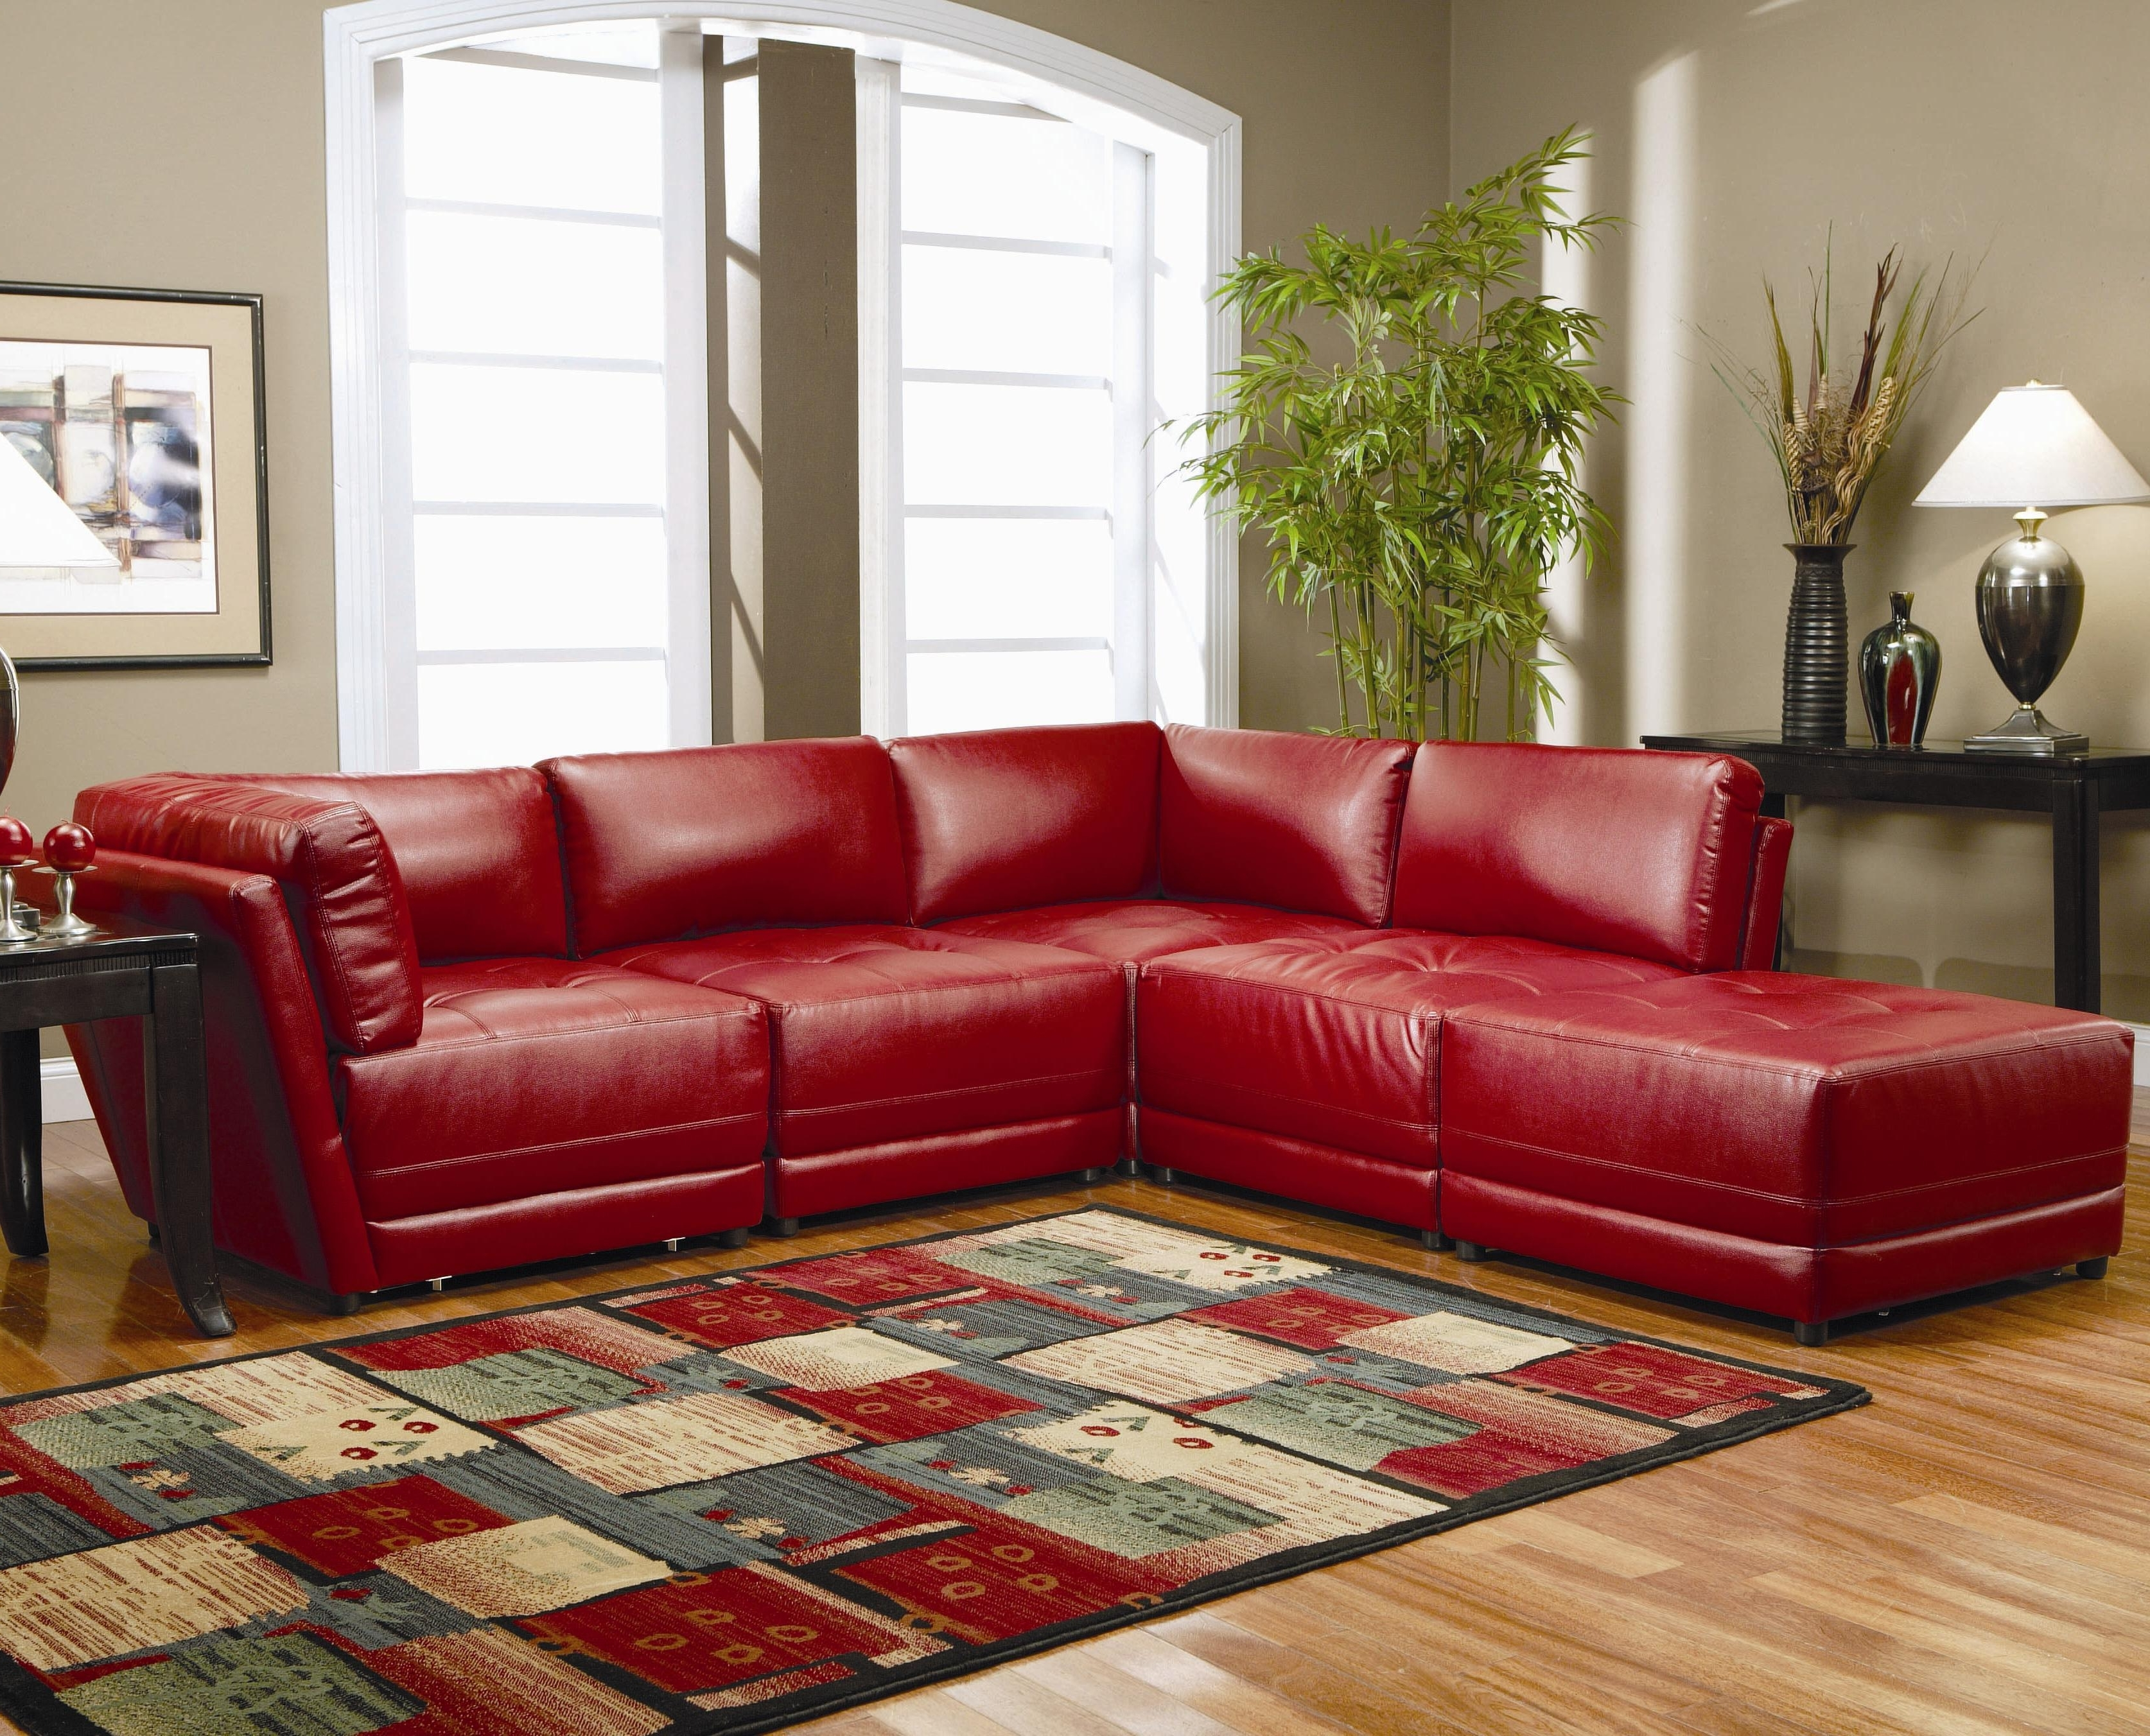 Latest Warm Red Leather Sectional L Shaped Sofa Design Ideas For Living In Red Leather Couches For Living Room (View 4 of 15)